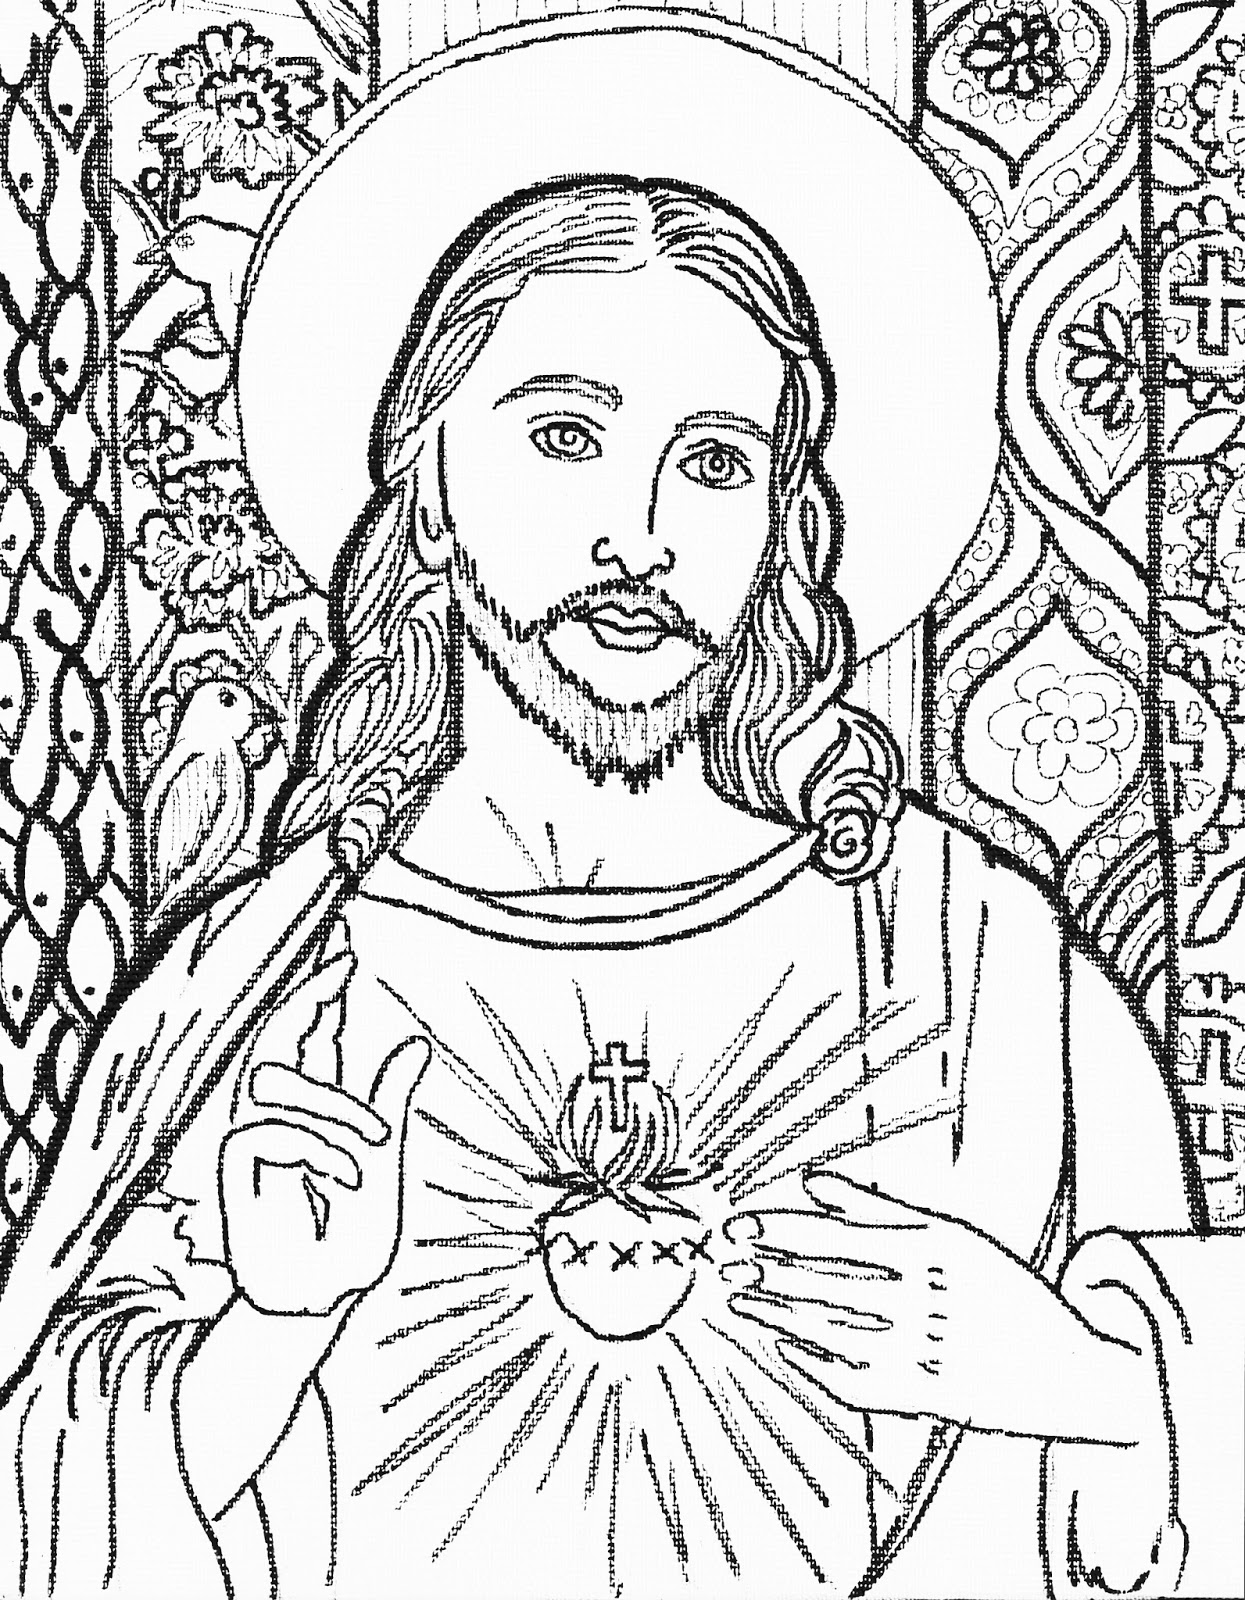 Line Drawing Of Jesus Face : Camilla spadafino art